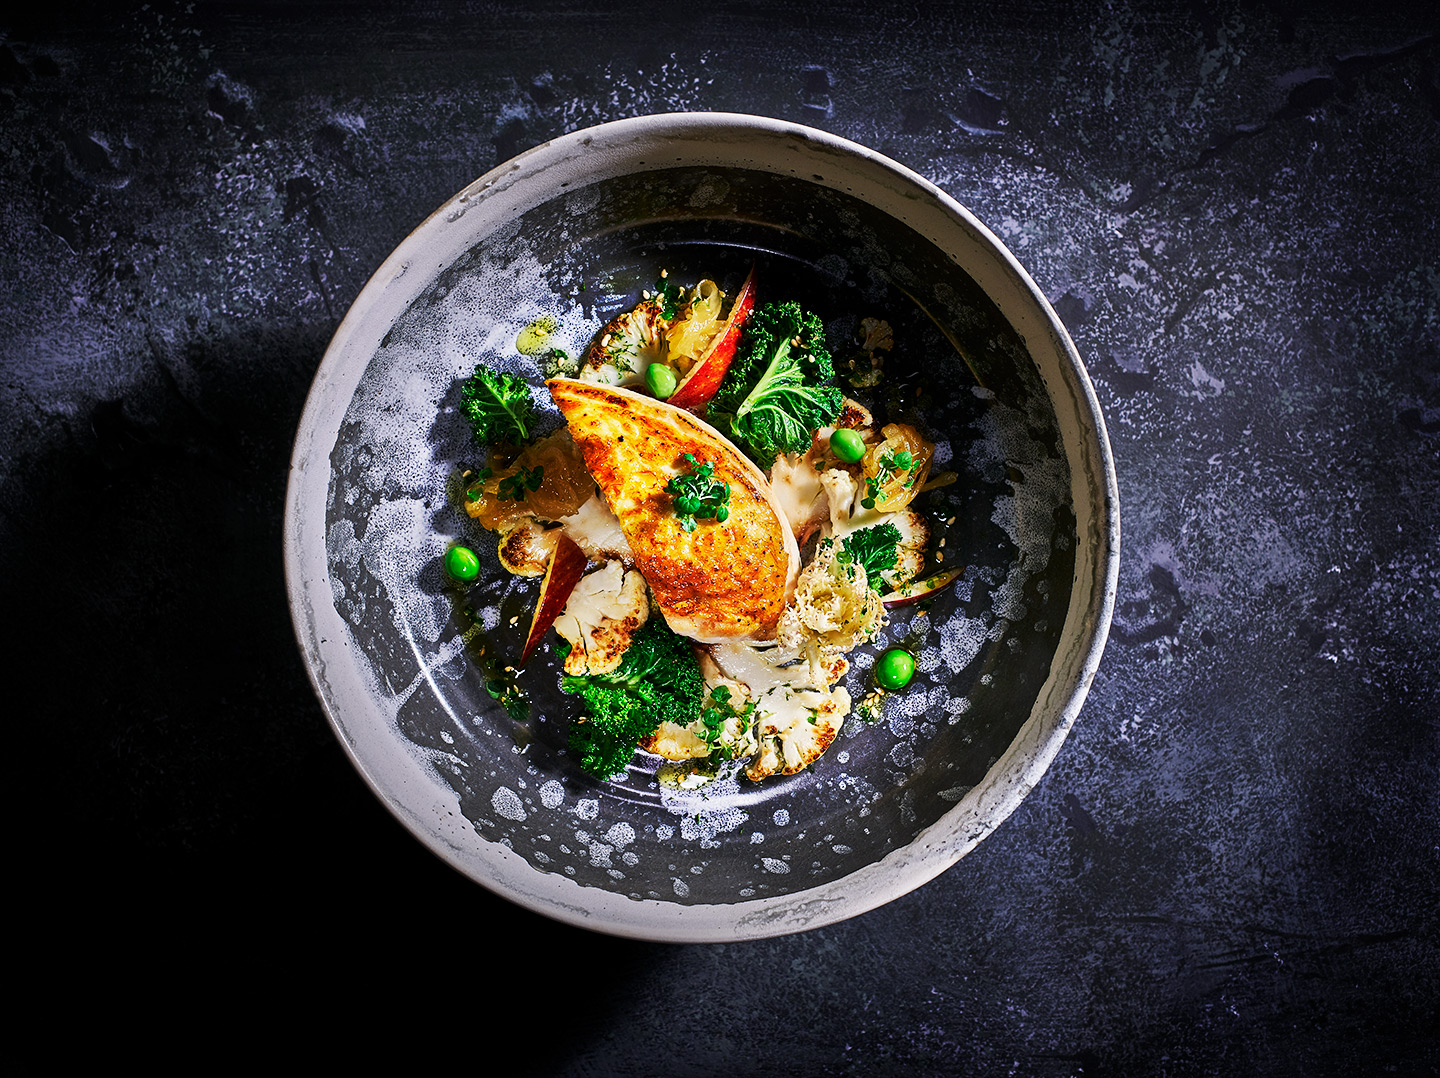 Arty Chicken with vegetables Cauliflower. Food photography by Food Photographer London, Michael Michaels